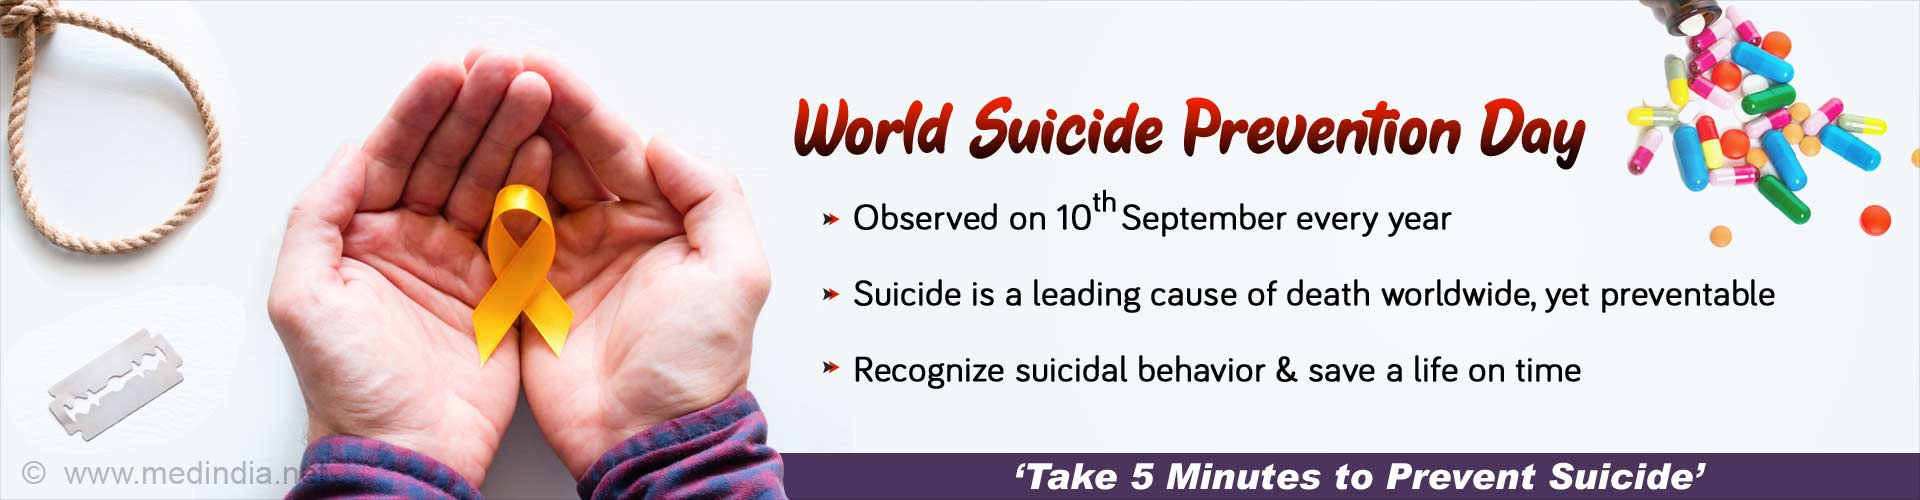 'Working Together to Prevent Suicide' – World Suicide Prevention Day